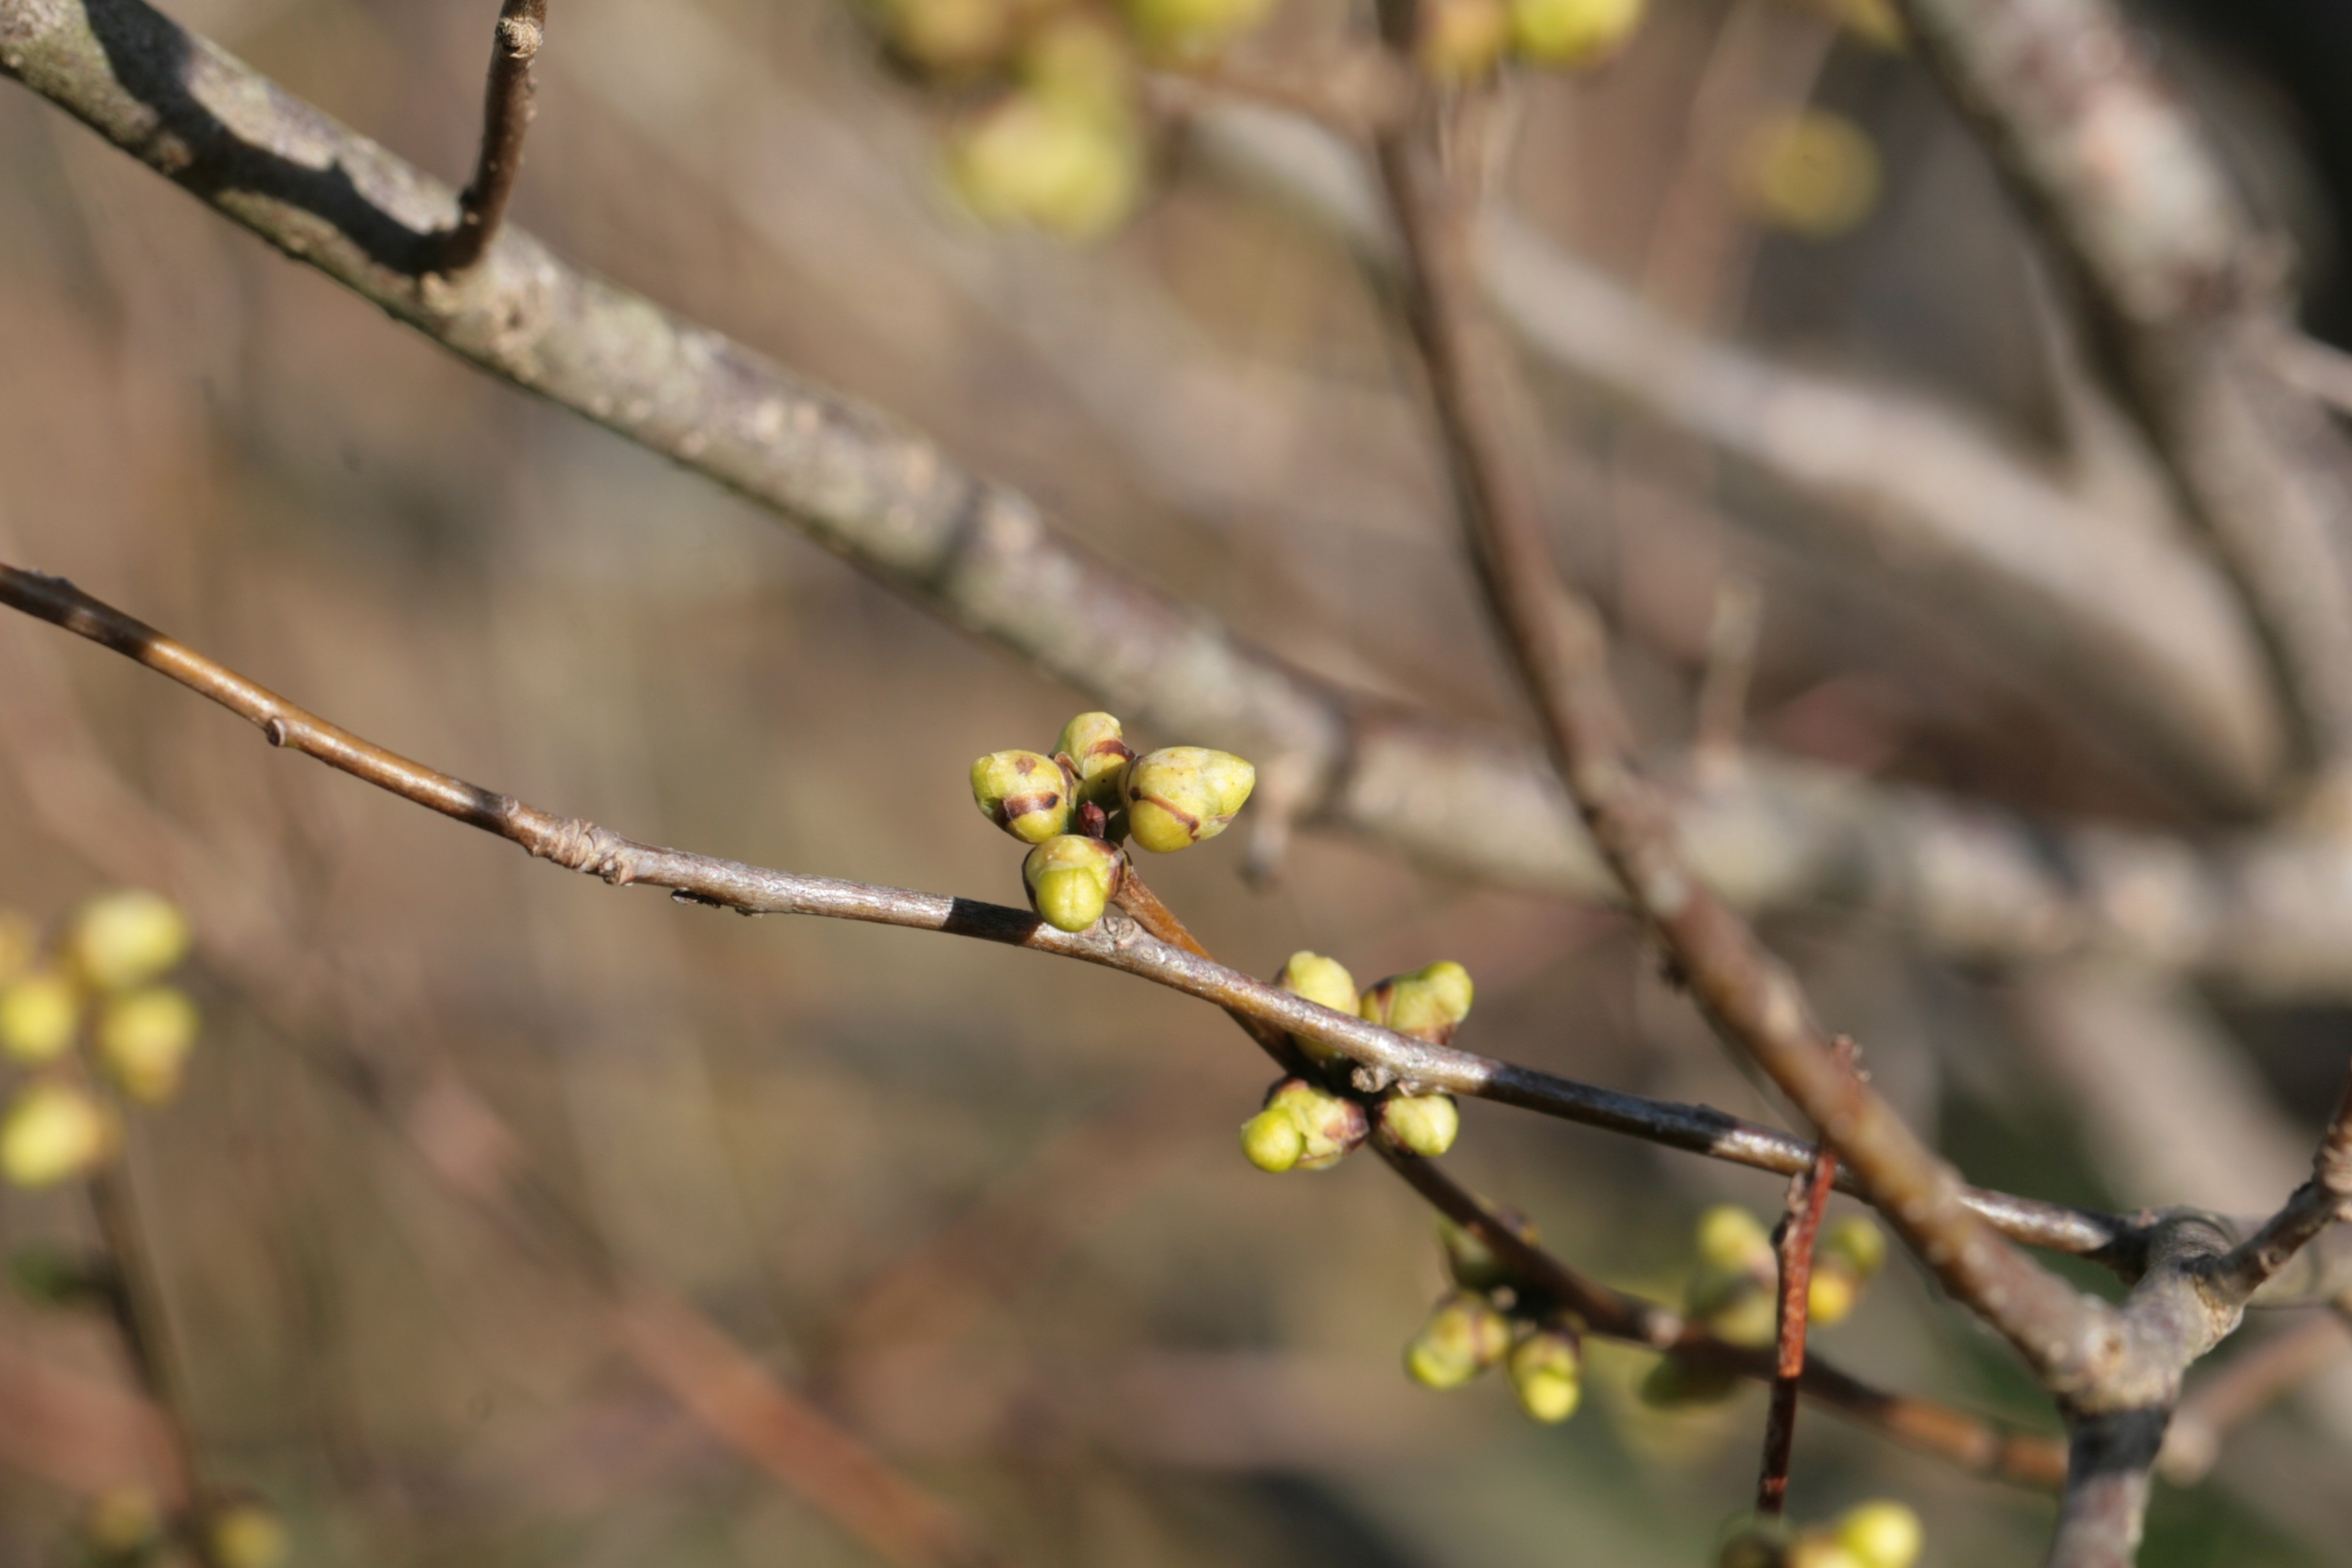 The Scientific Name is Lindera benzoin. You will likely hear them called Northern Spicebush. This picture shows the Close-up of swollen flower buds in early March. of Lindera benzoin